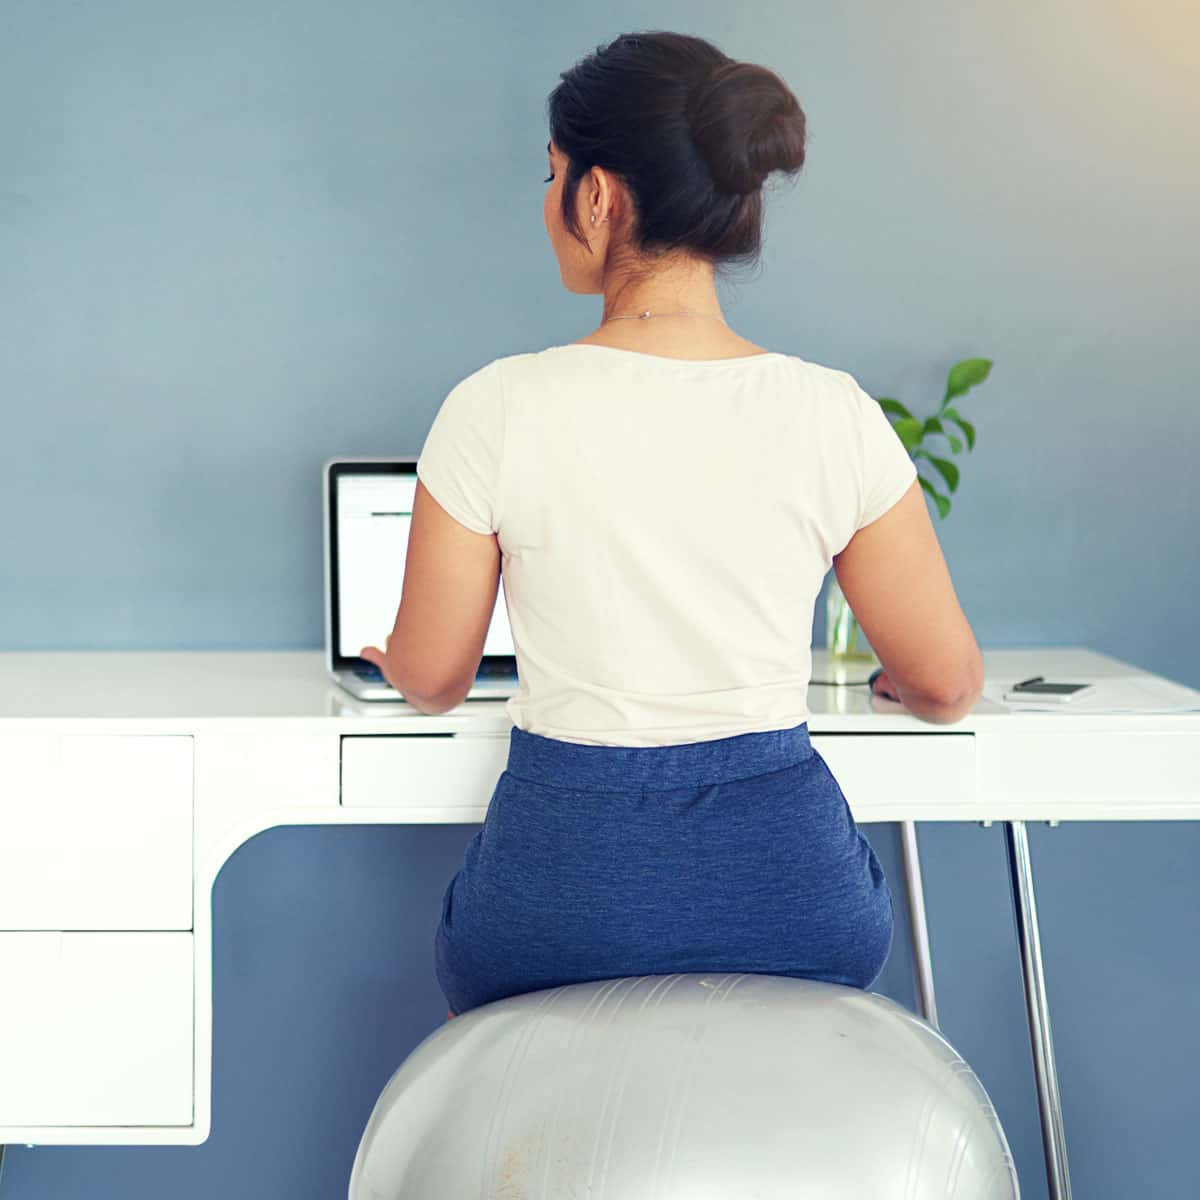 Image of someone sitting on a medicine ball chair at their desk.